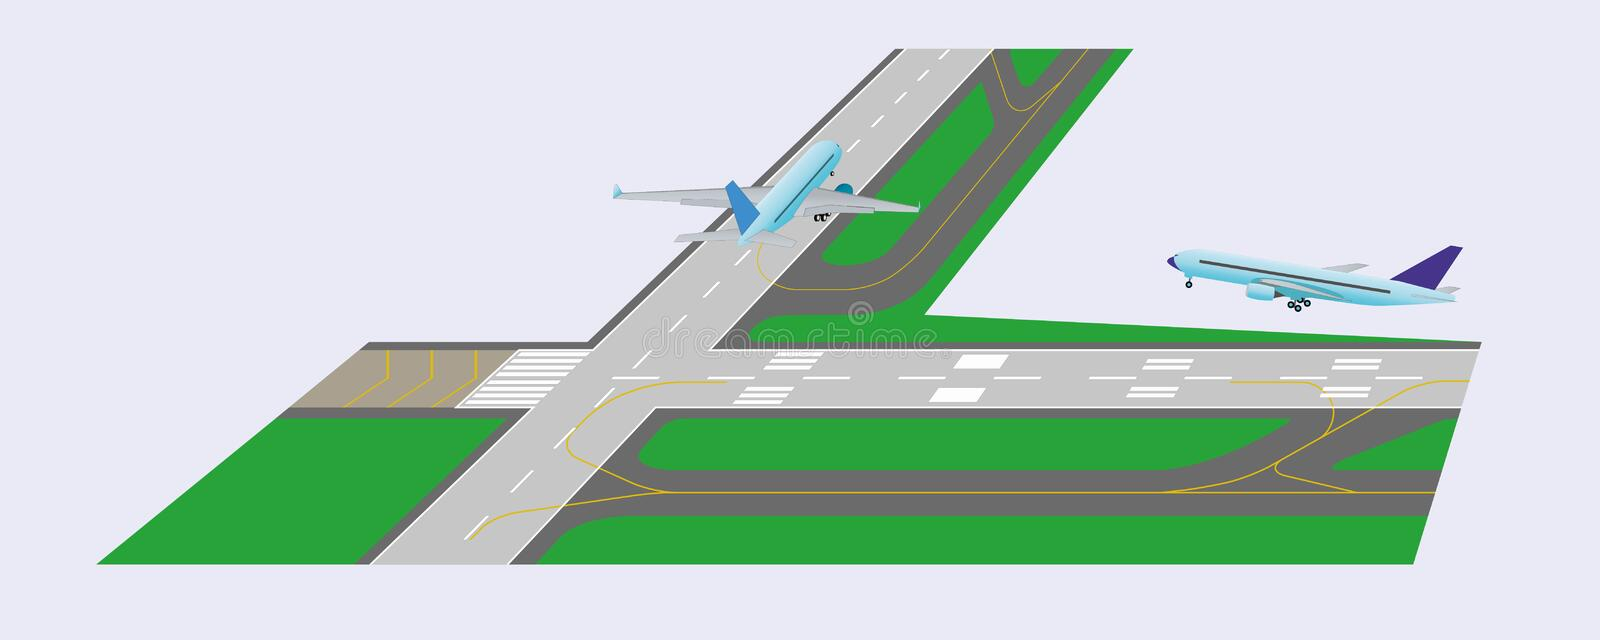 Airplane takeoff from runway. Airplane taxi on runway and airplane takeoff from runway. Perspective view. Vector illustration. Eps 10 stock illustration